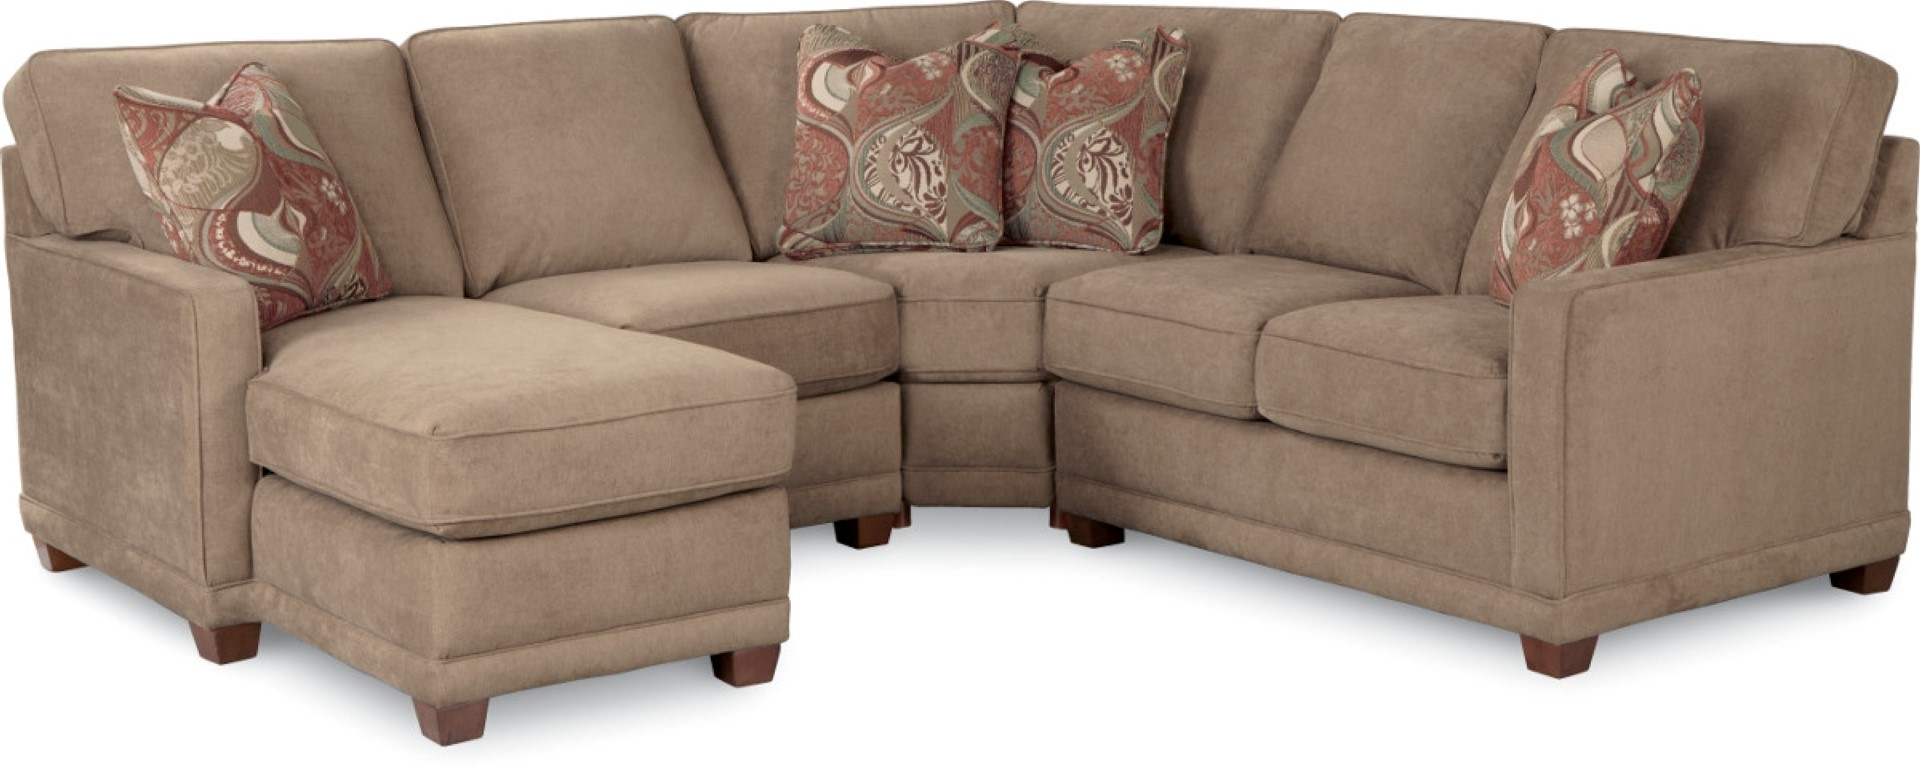 Well Liked La Z Boy Sectional Sofas Pertaining To Kennedy Sectional Sofa – Town & Country Furniture (View 2 of 15)